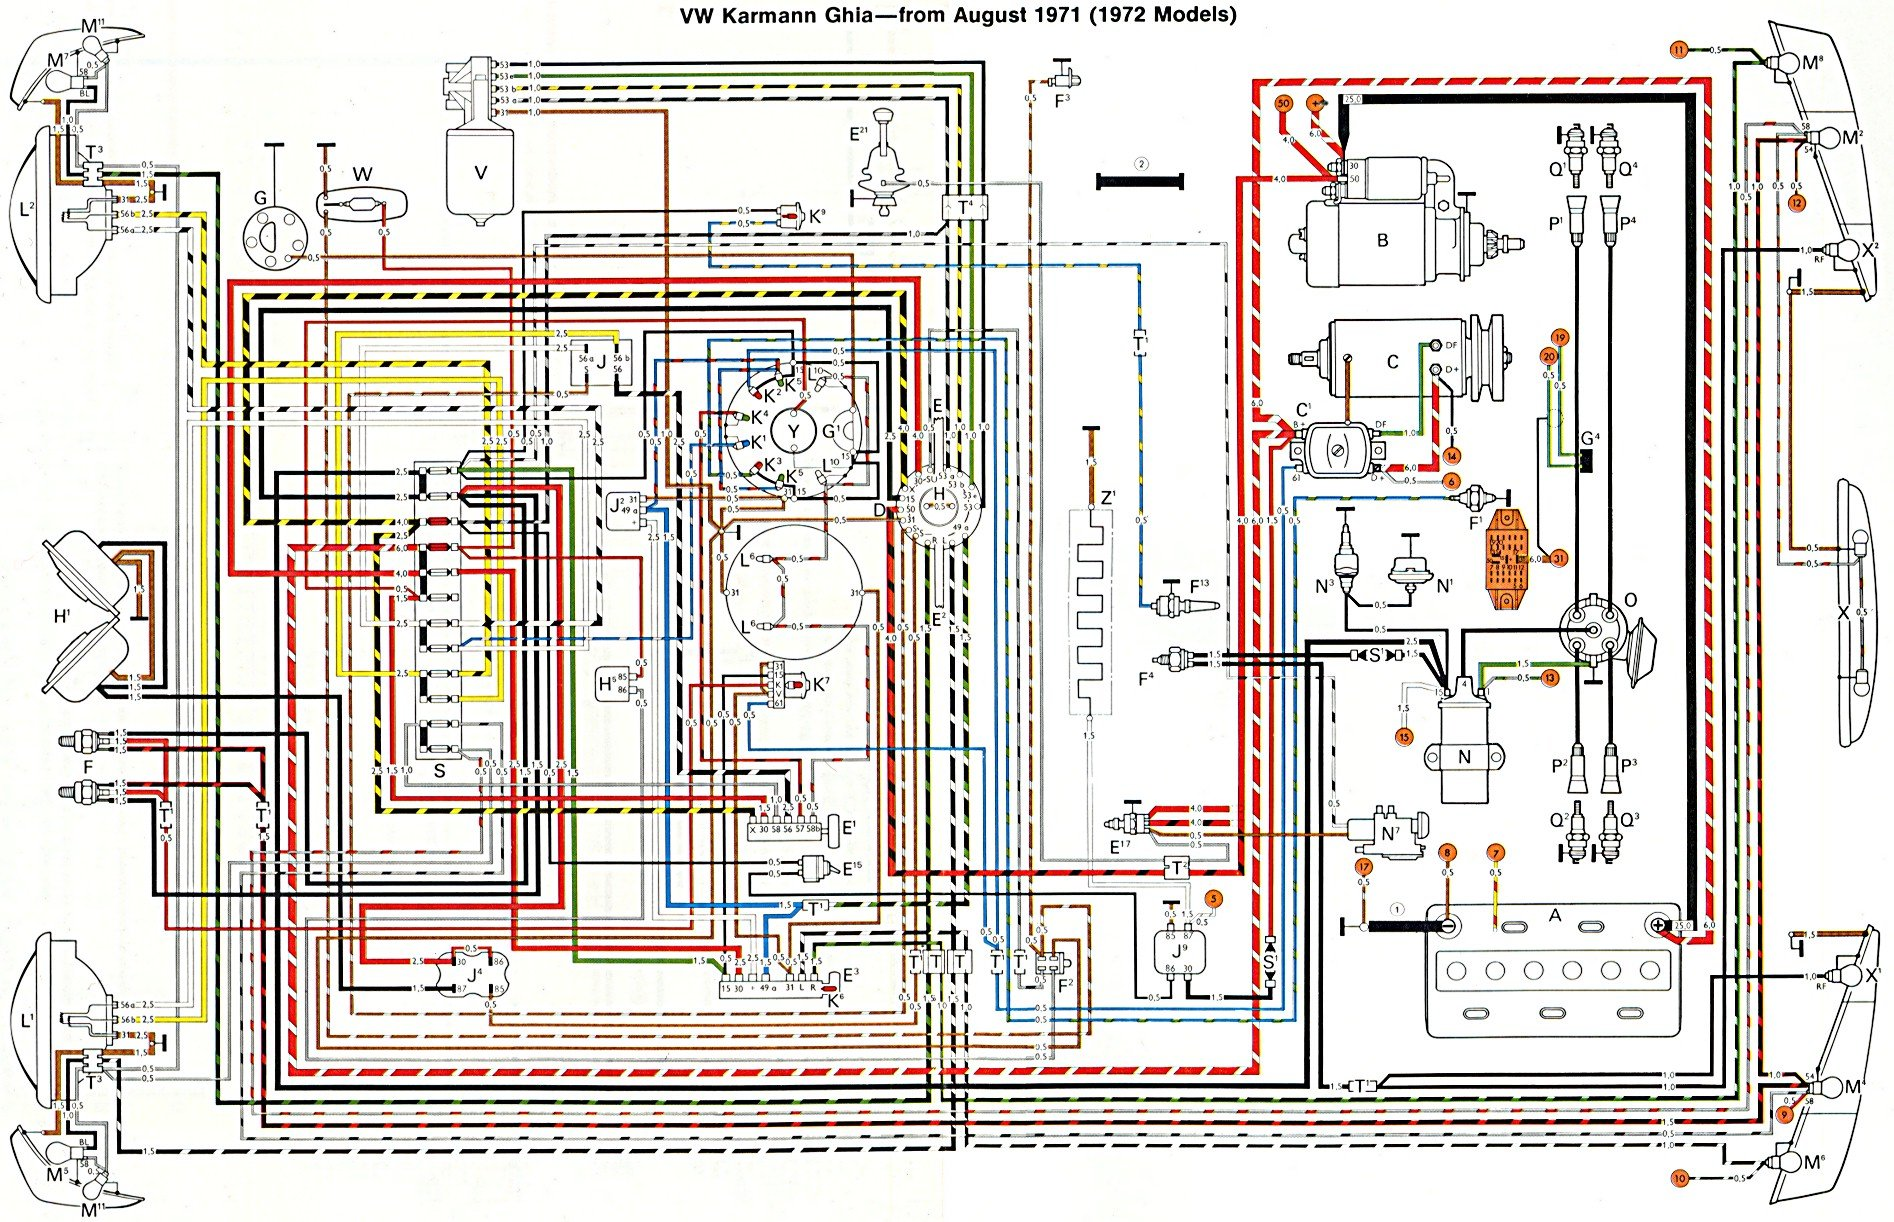 72ghia 1971 karmann ghia wiring diagram karmann ghia wiring harness Wiring Harness Diagram at gsmx.co